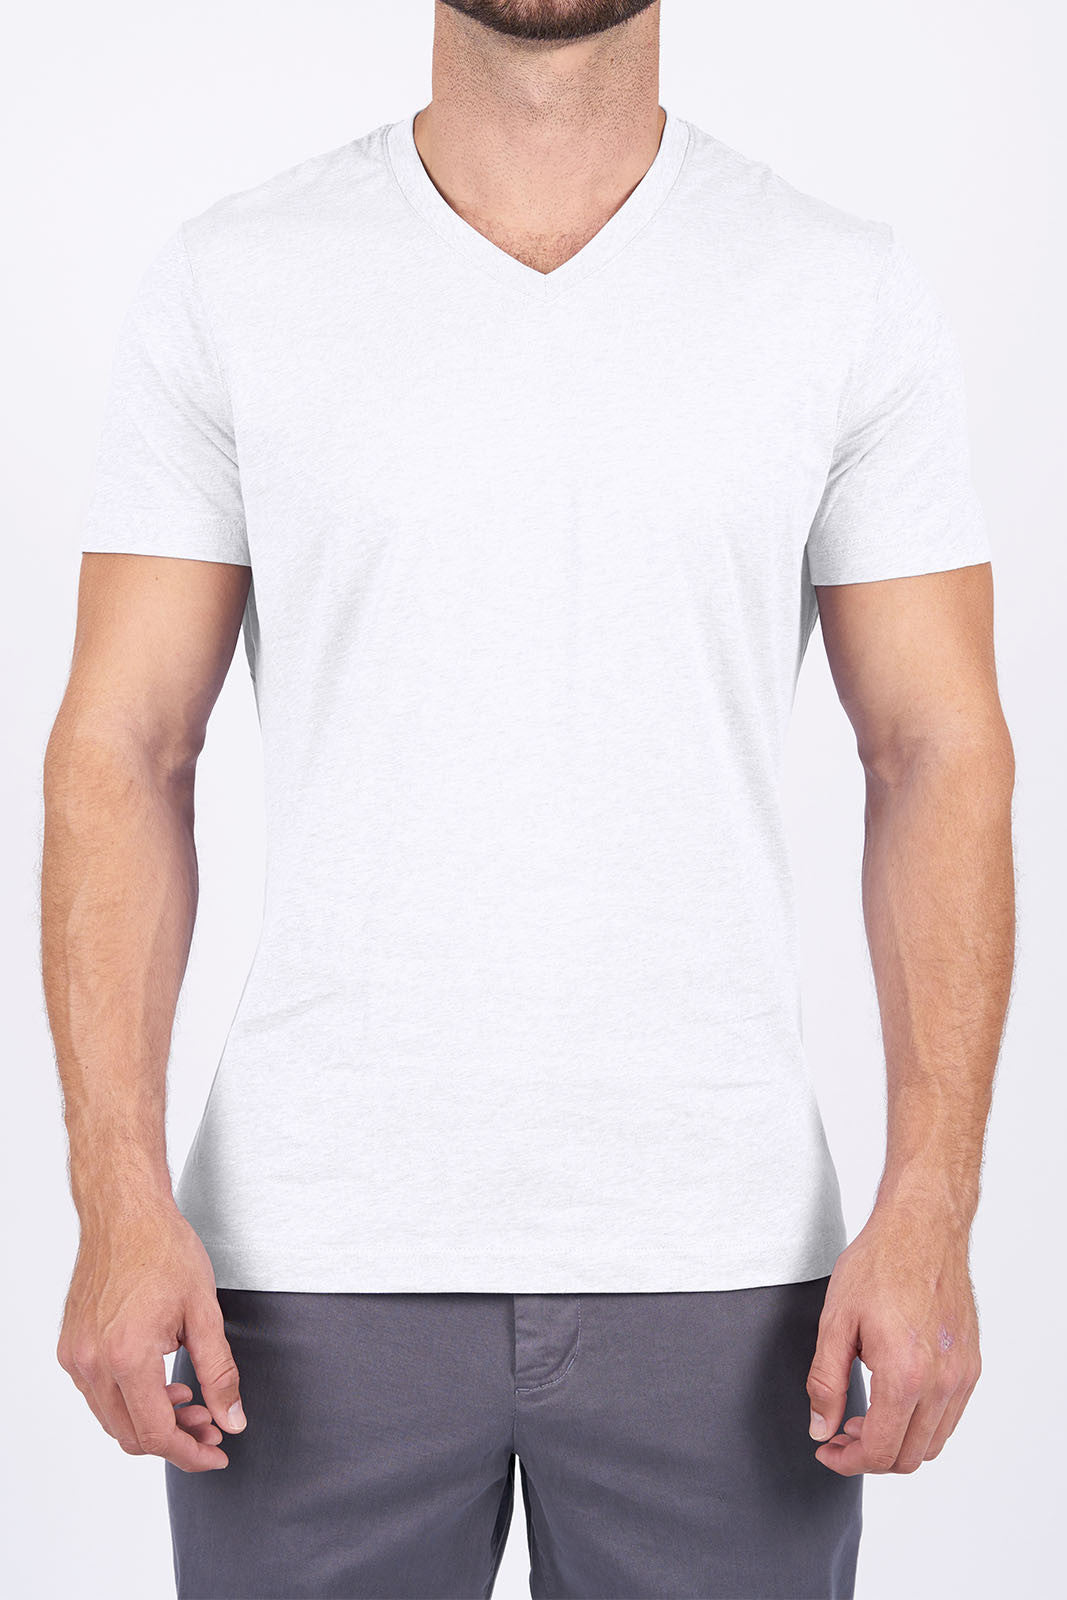 White Long-Staple Cotton T-Shirt: V-Neck